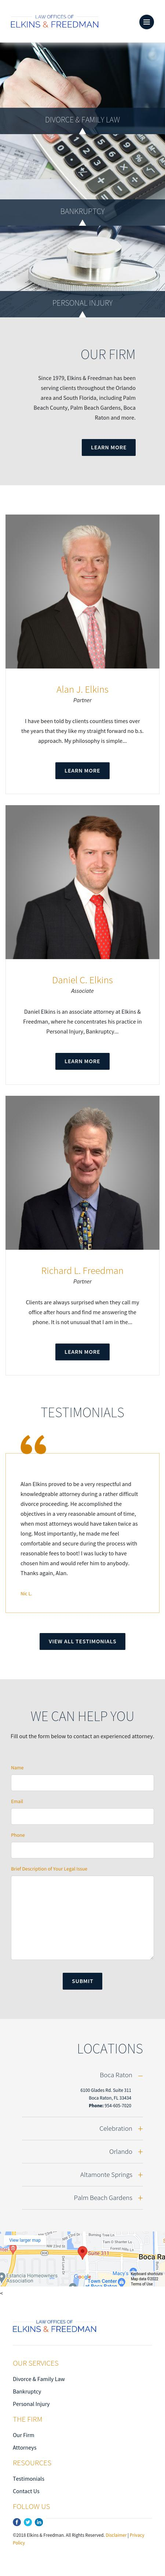 The Law Offices of Elkins & Freedman - Orlando FL Lawyers